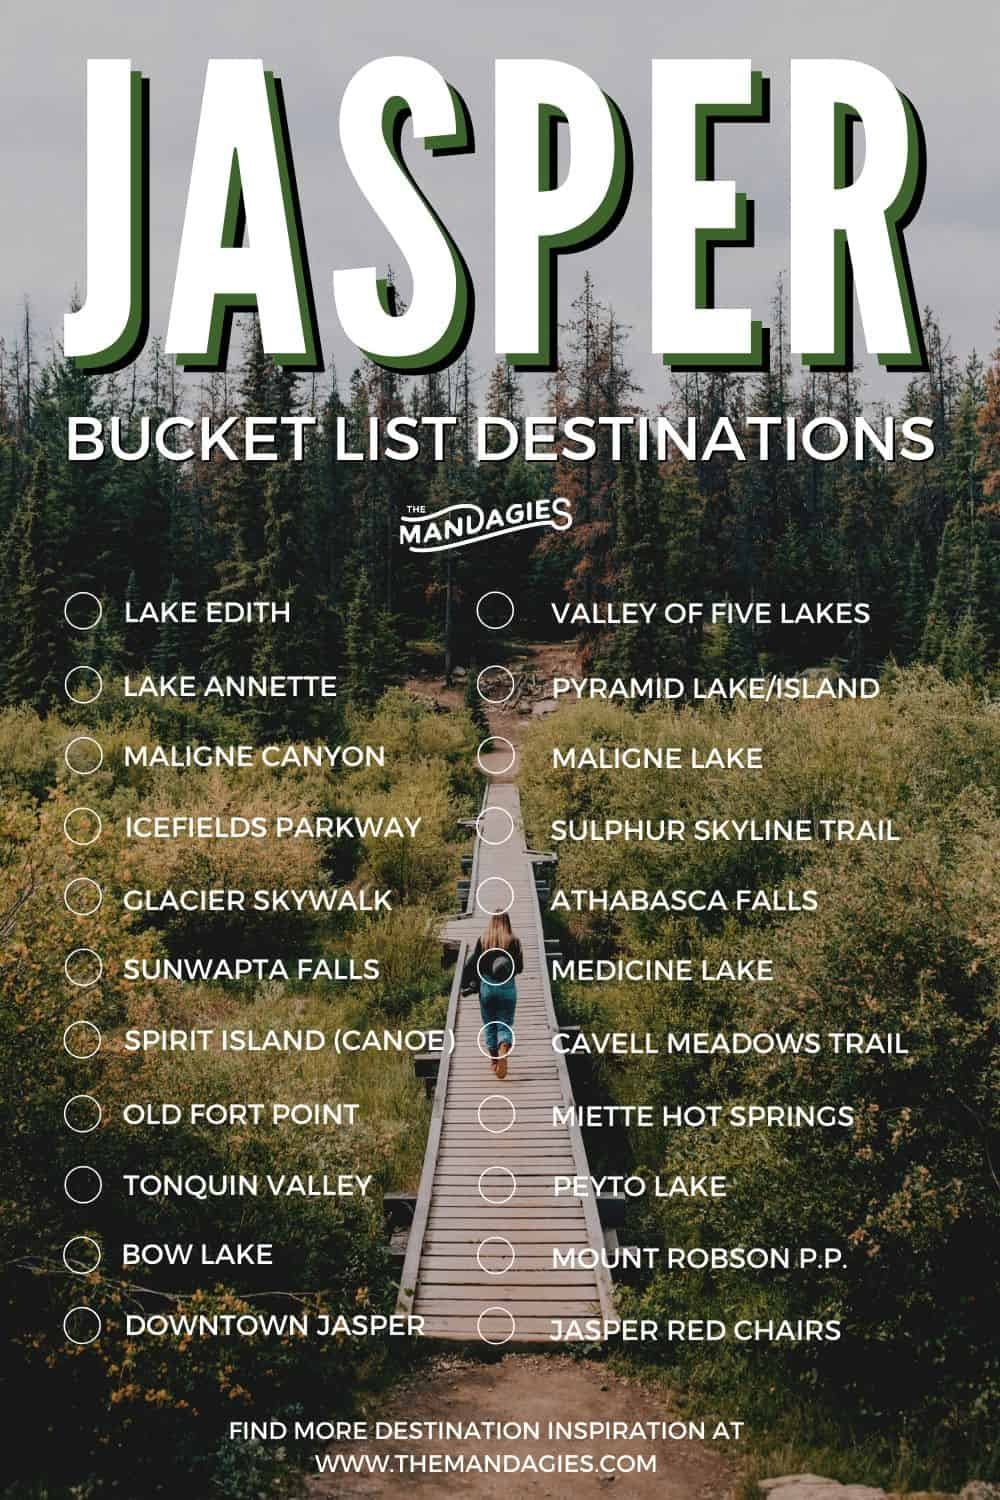 Discover the best Jasper National Park one-week itinerary here! It will take you some of the best spots in Jasper, including Athabasca Falls, Maligne Lake, Pyramid Island, and some secret spots in the Canadian Rockies! See it all here: #canadianrockies #jasper #jaspernationalpark #malignelake #pyramidlake #canada #adventure